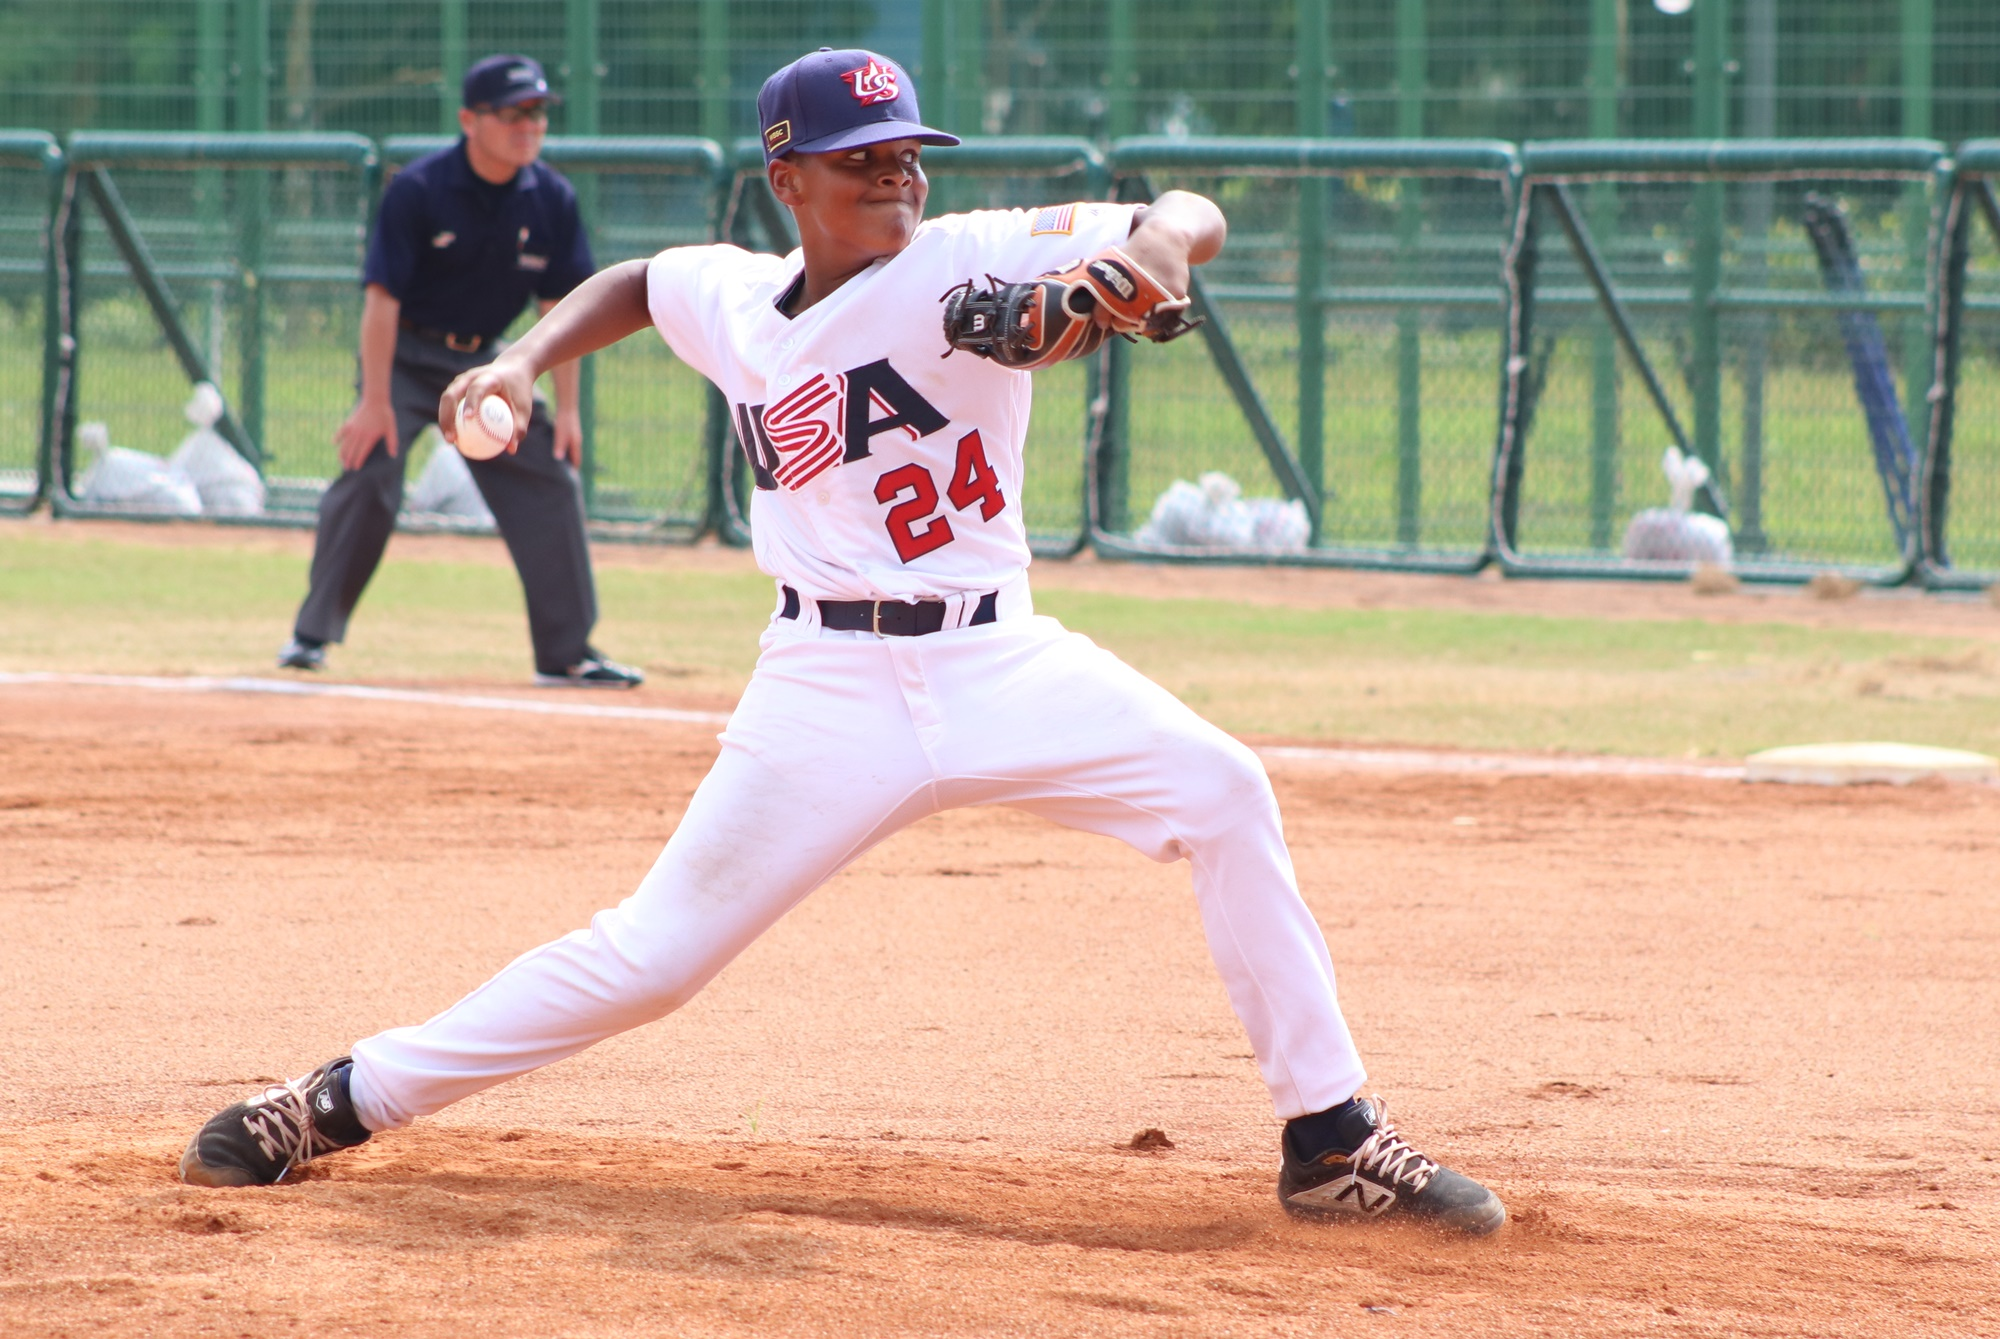 Jayden Stroman, the brother of MLB pitcher Marcus, started for the USA against Italy